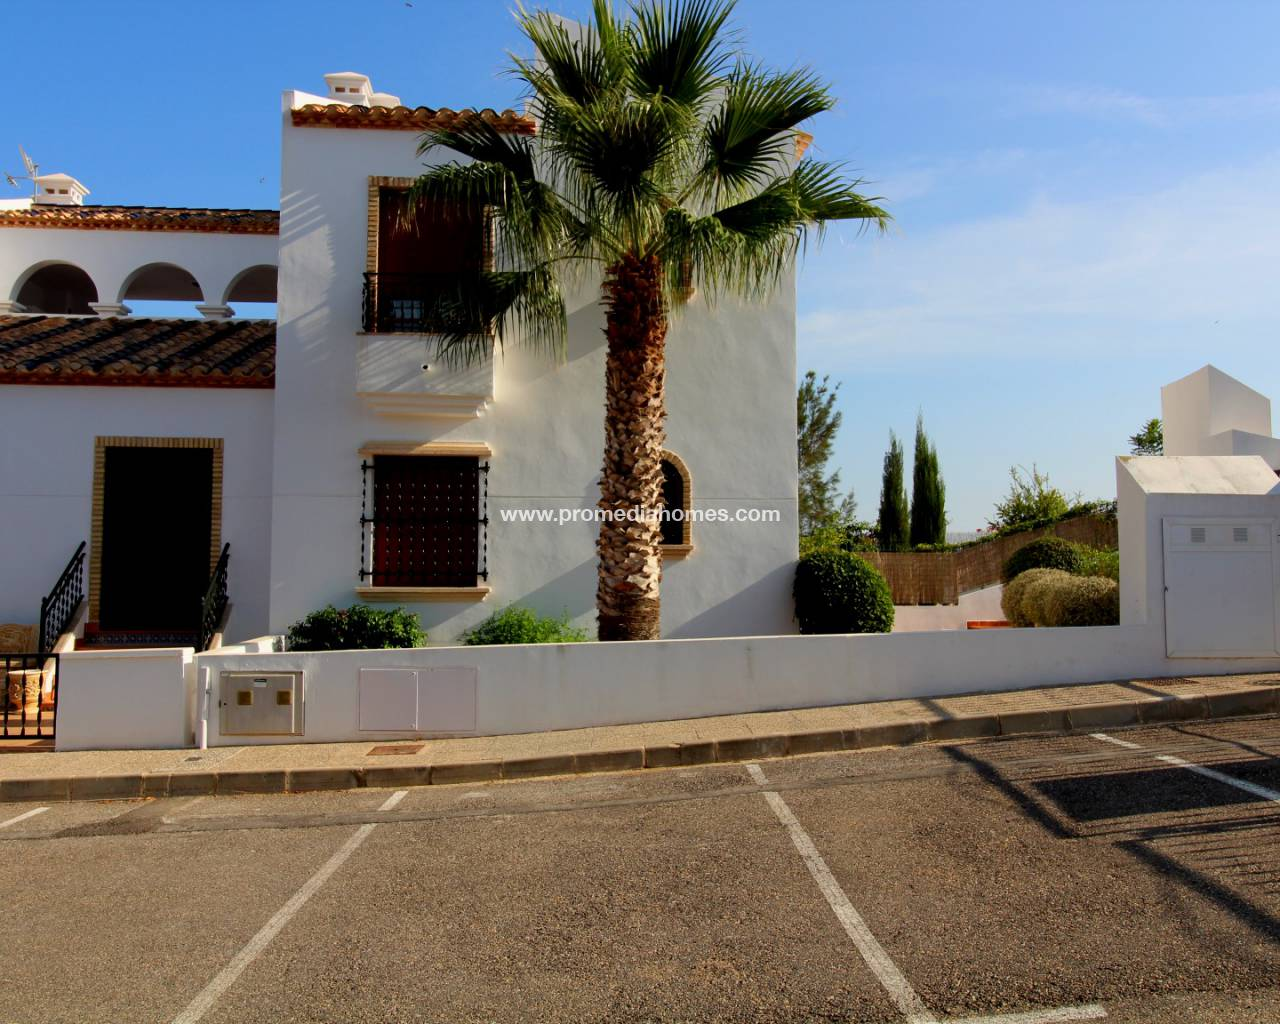 Property for sale in Villamartin Golf